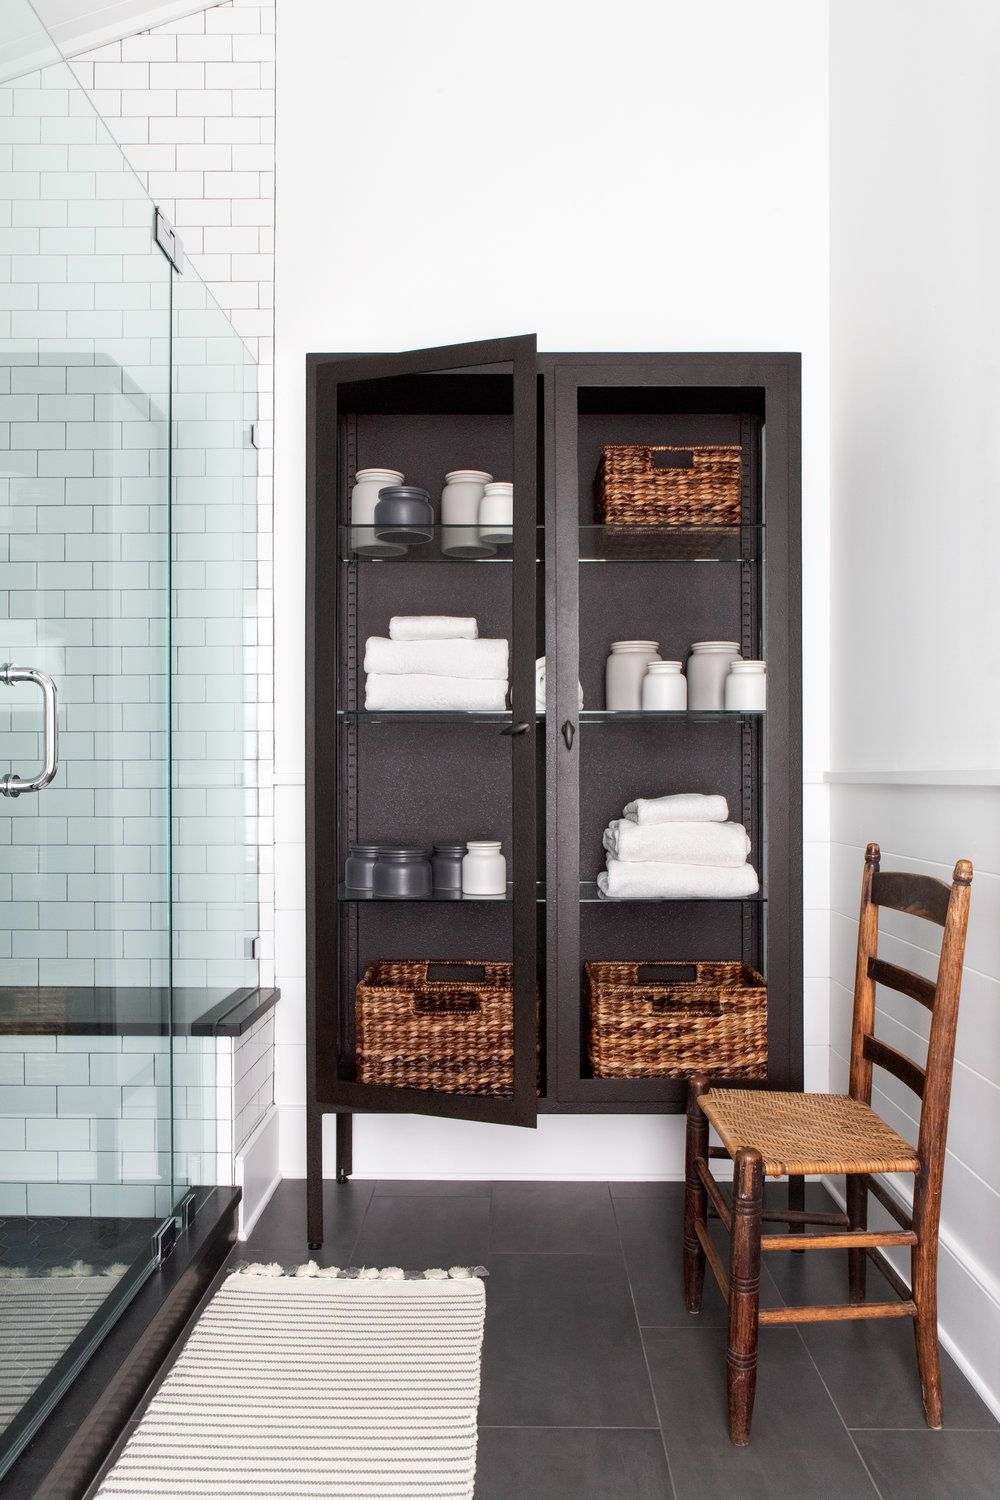 20 Best Bathroom Storage Ideas In 2019 Creative Bathroom within dimensions 1000 X 1500